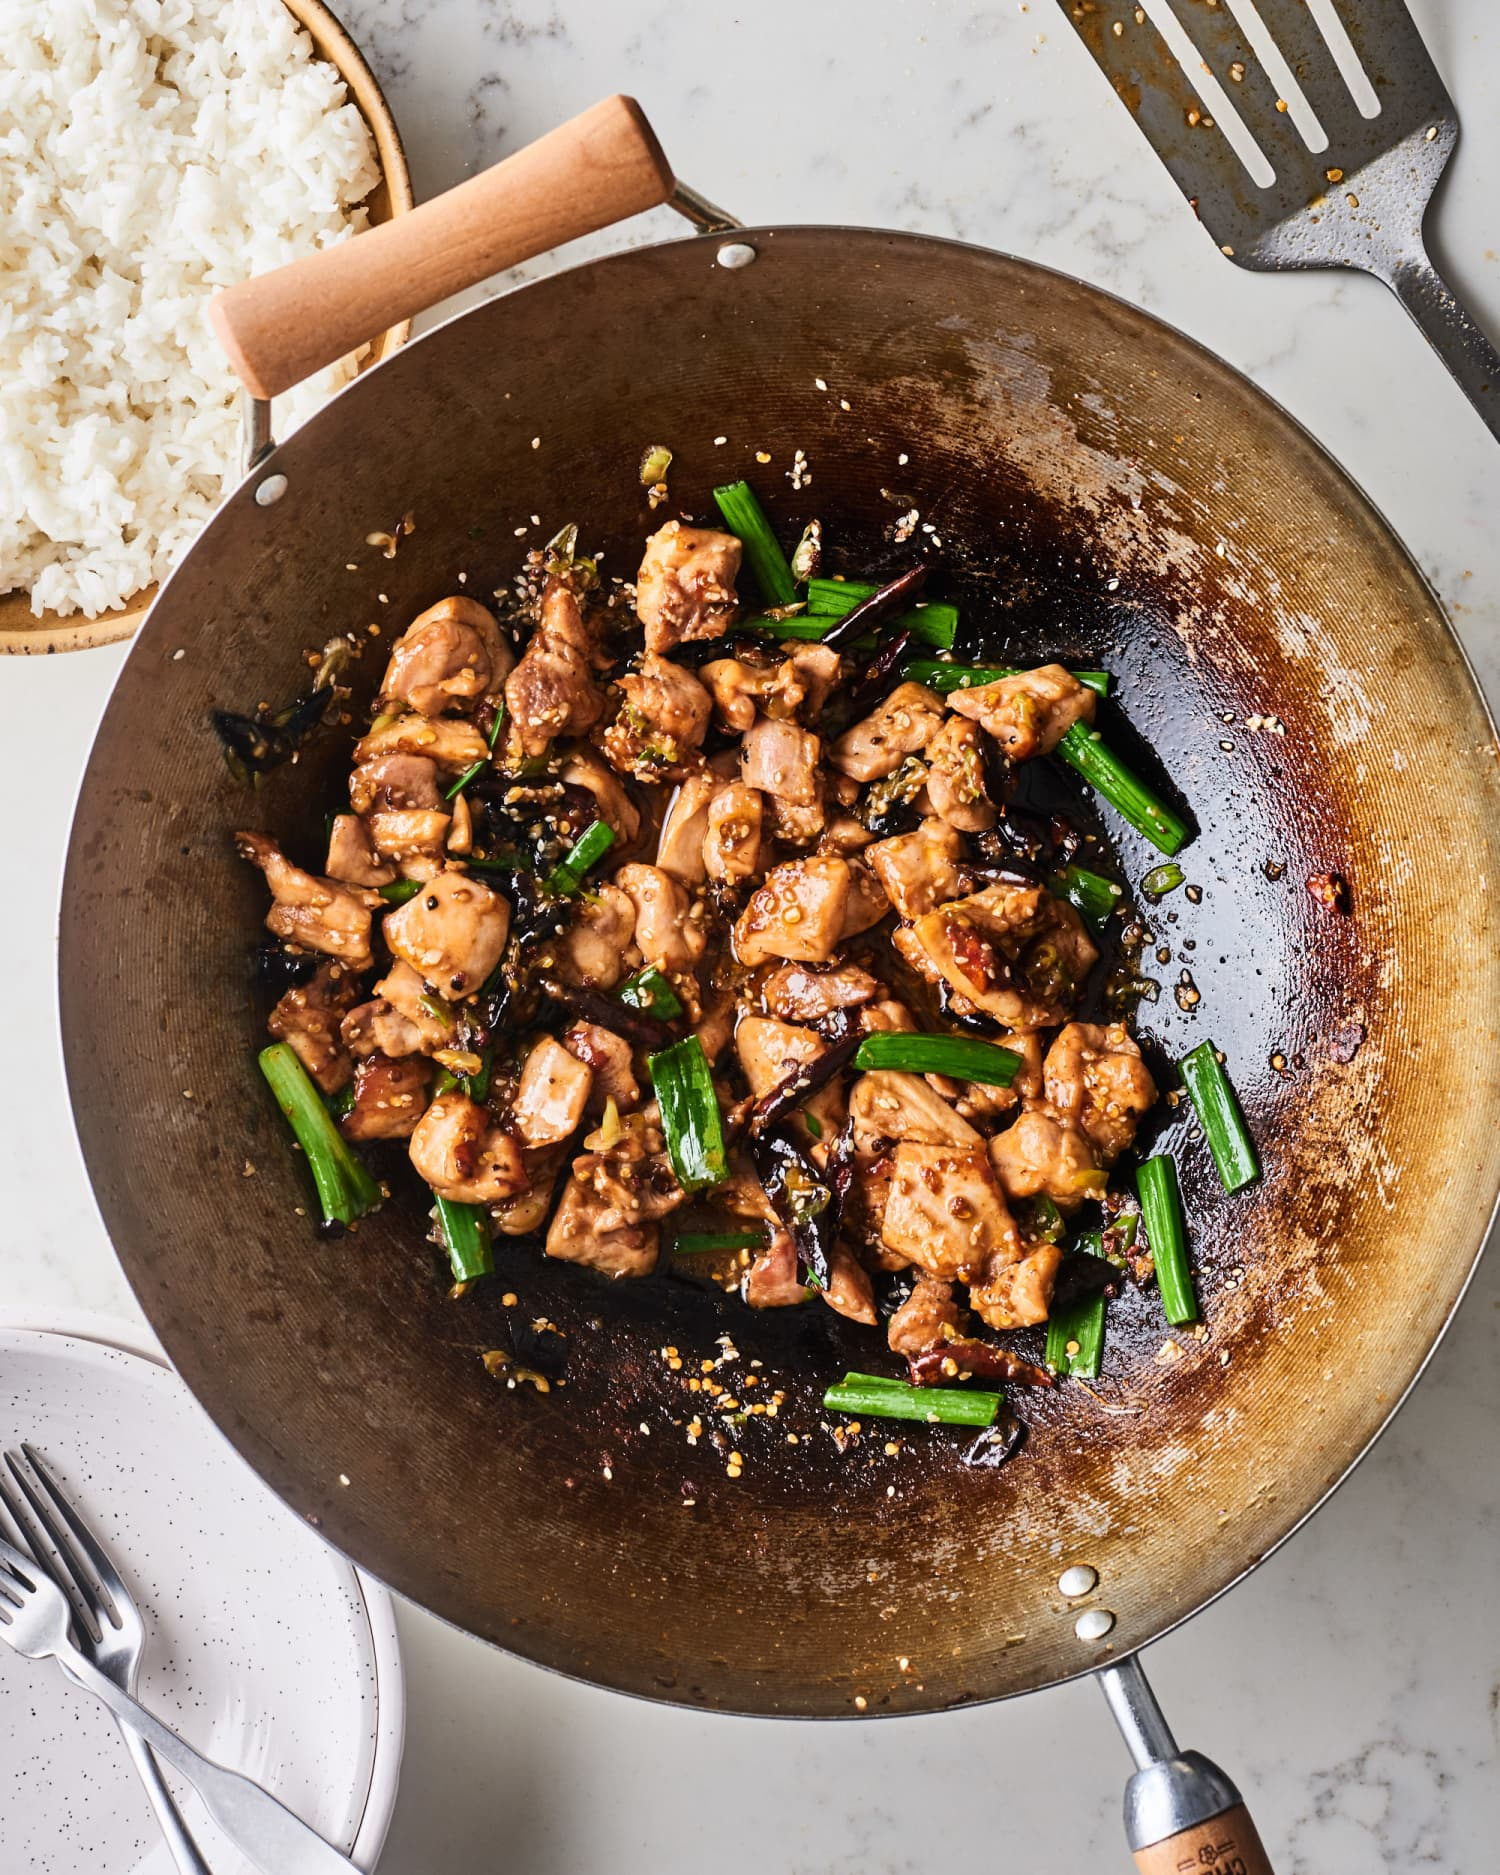 How To Make Weeknight-Friendly Szechuan Chicken